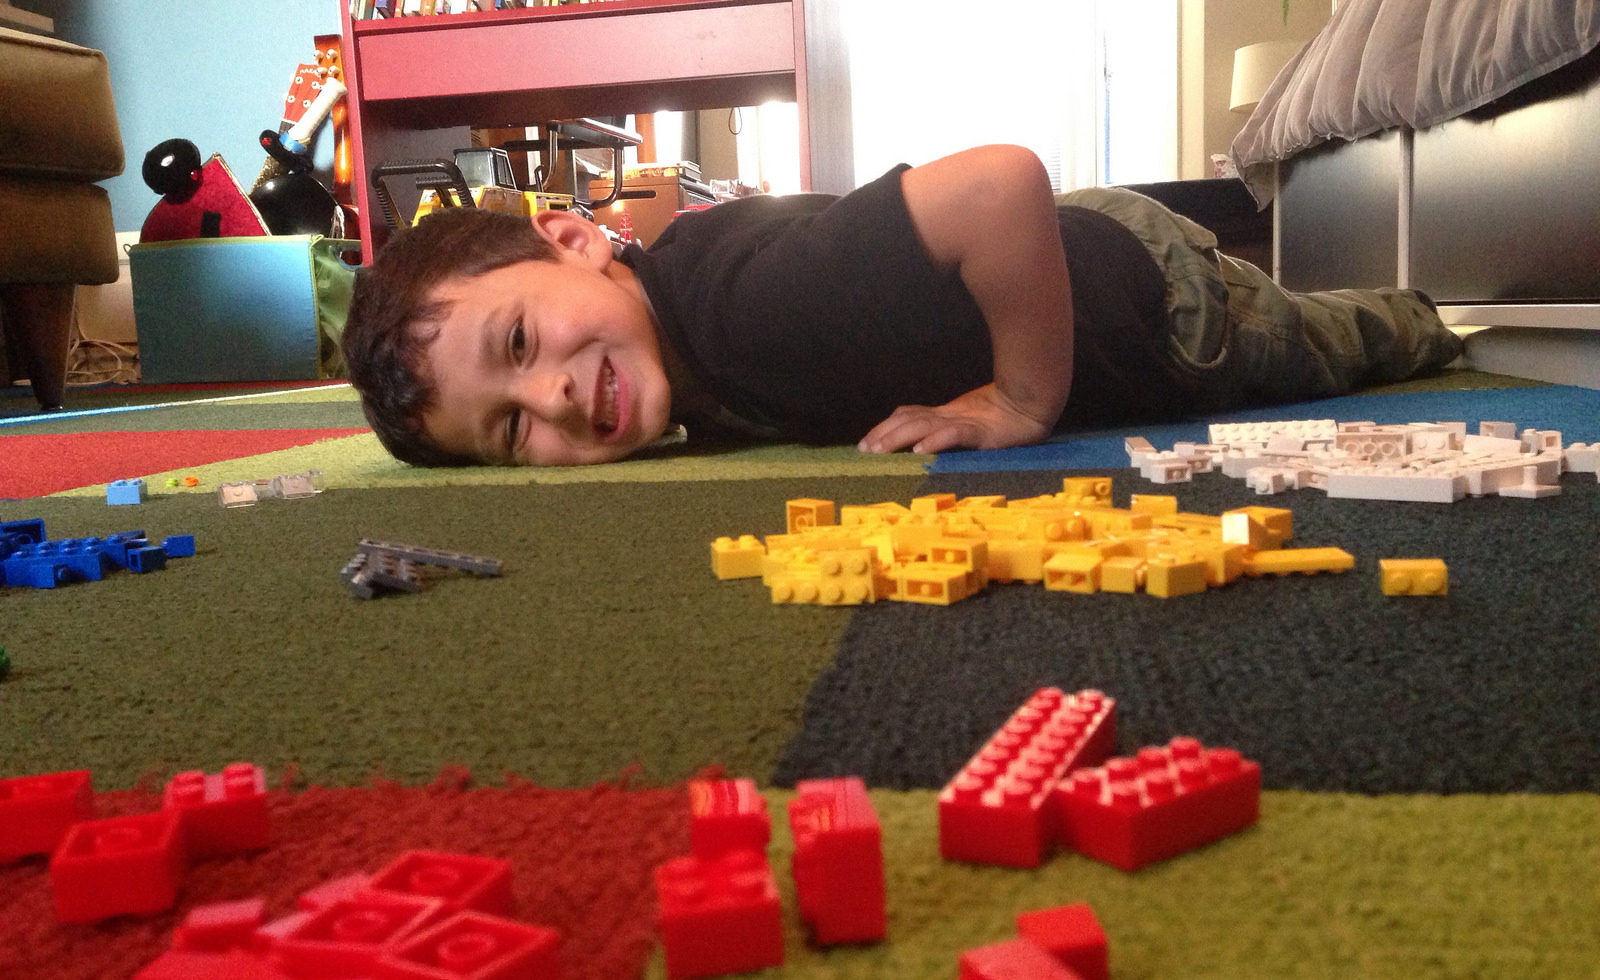 Too much Lego — and children! — on the floor (Photo/flickr-davitydave CC BY 2.0)